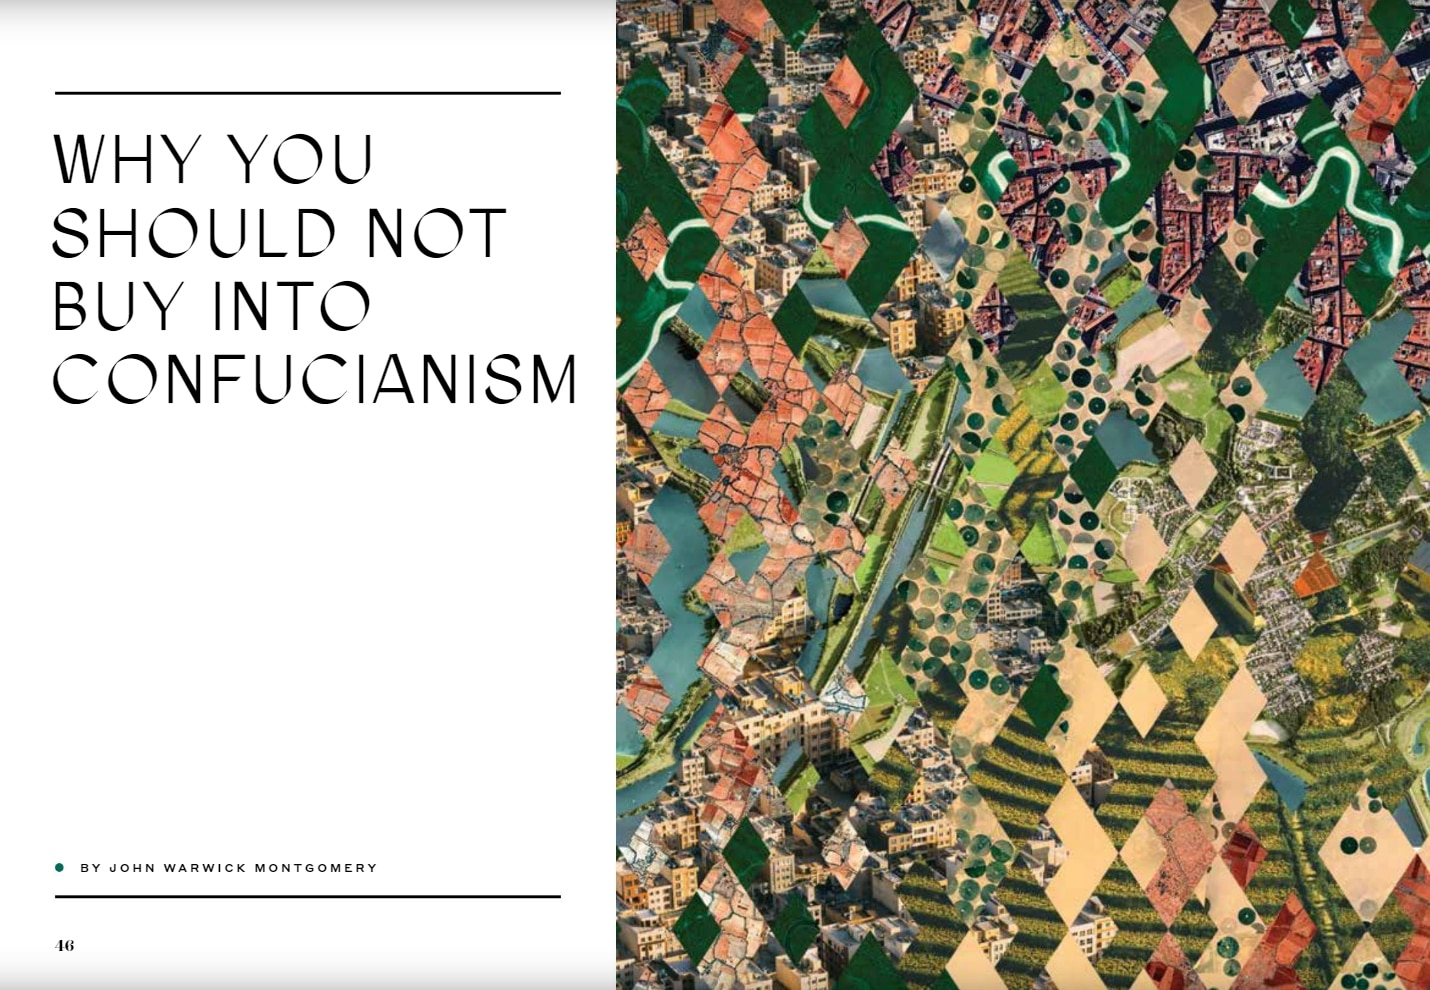 Why You Should Not Buy into Confucianism